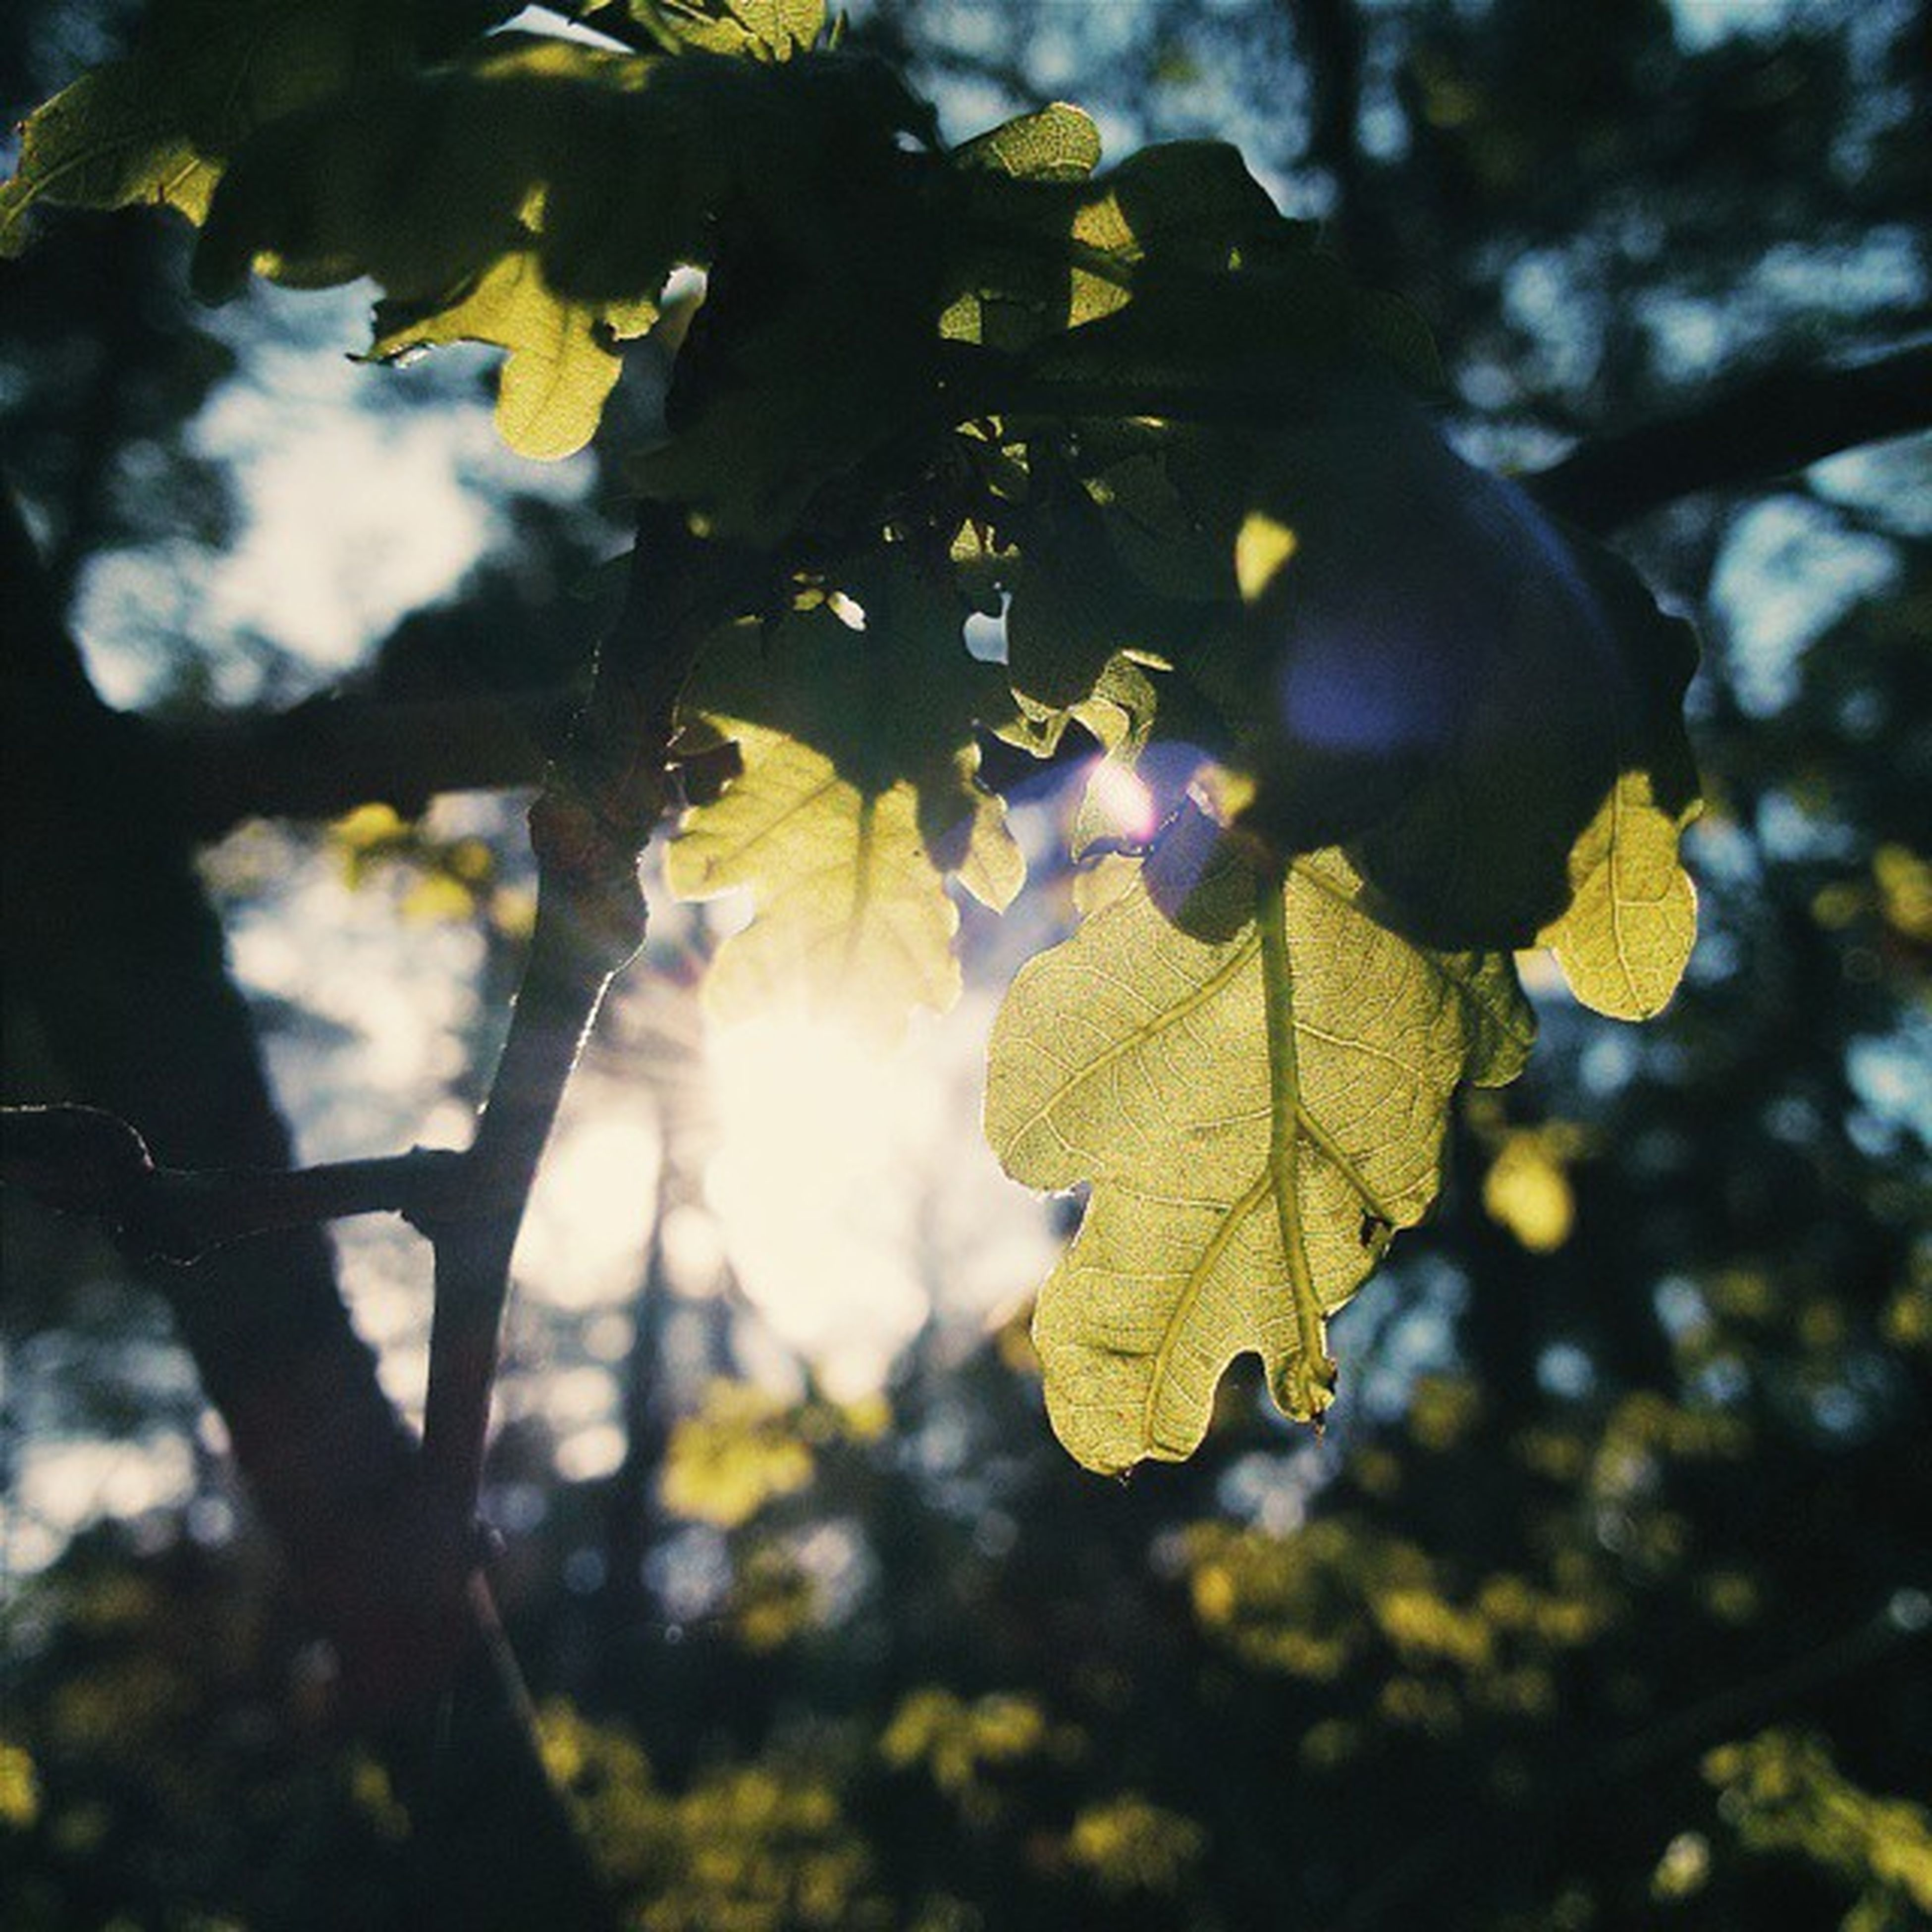 tree, branch, leaf, low angle view, growth, focus on foreground, nature, sunlight, close-up, tranquility, autumn, sun, day, outdoors, beauty in nature, lens flare, sunbeam, leaves, sky, no people